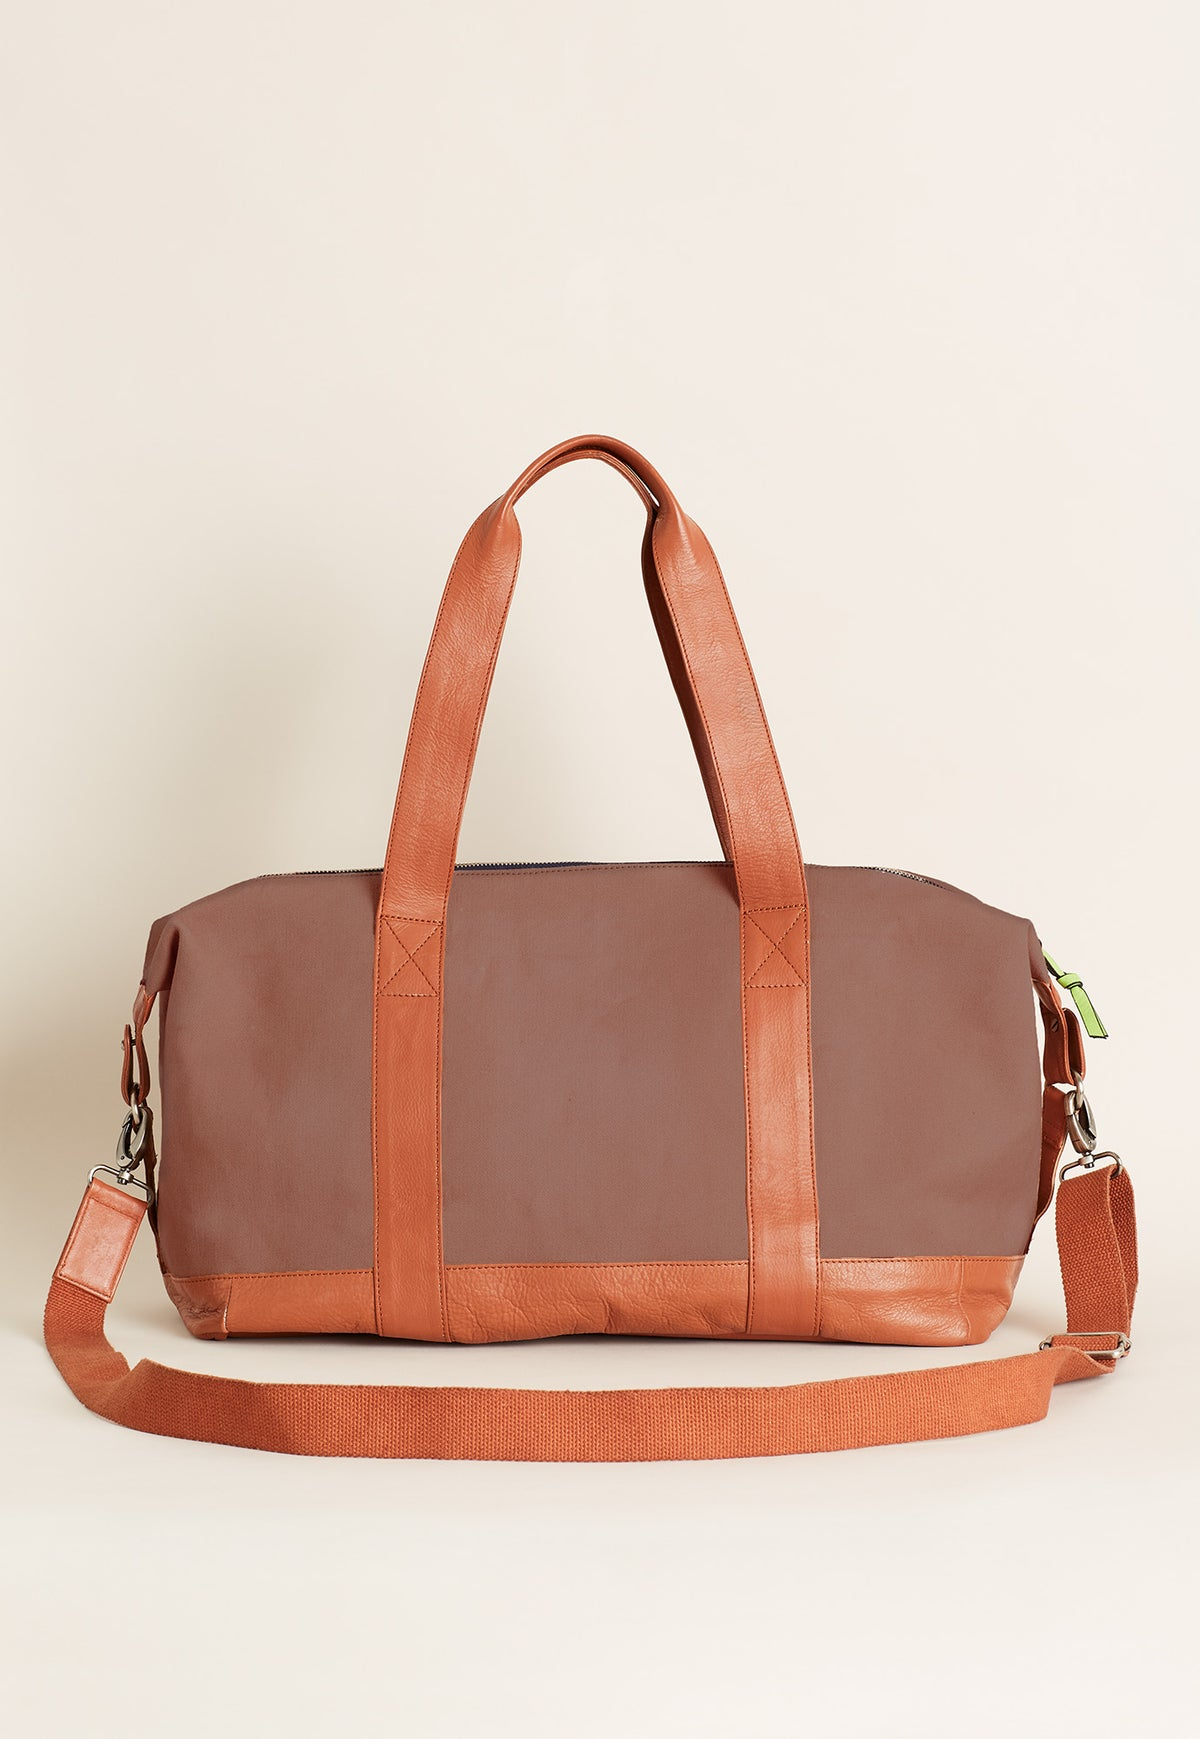 Duffle Bag - Tobacco Multi